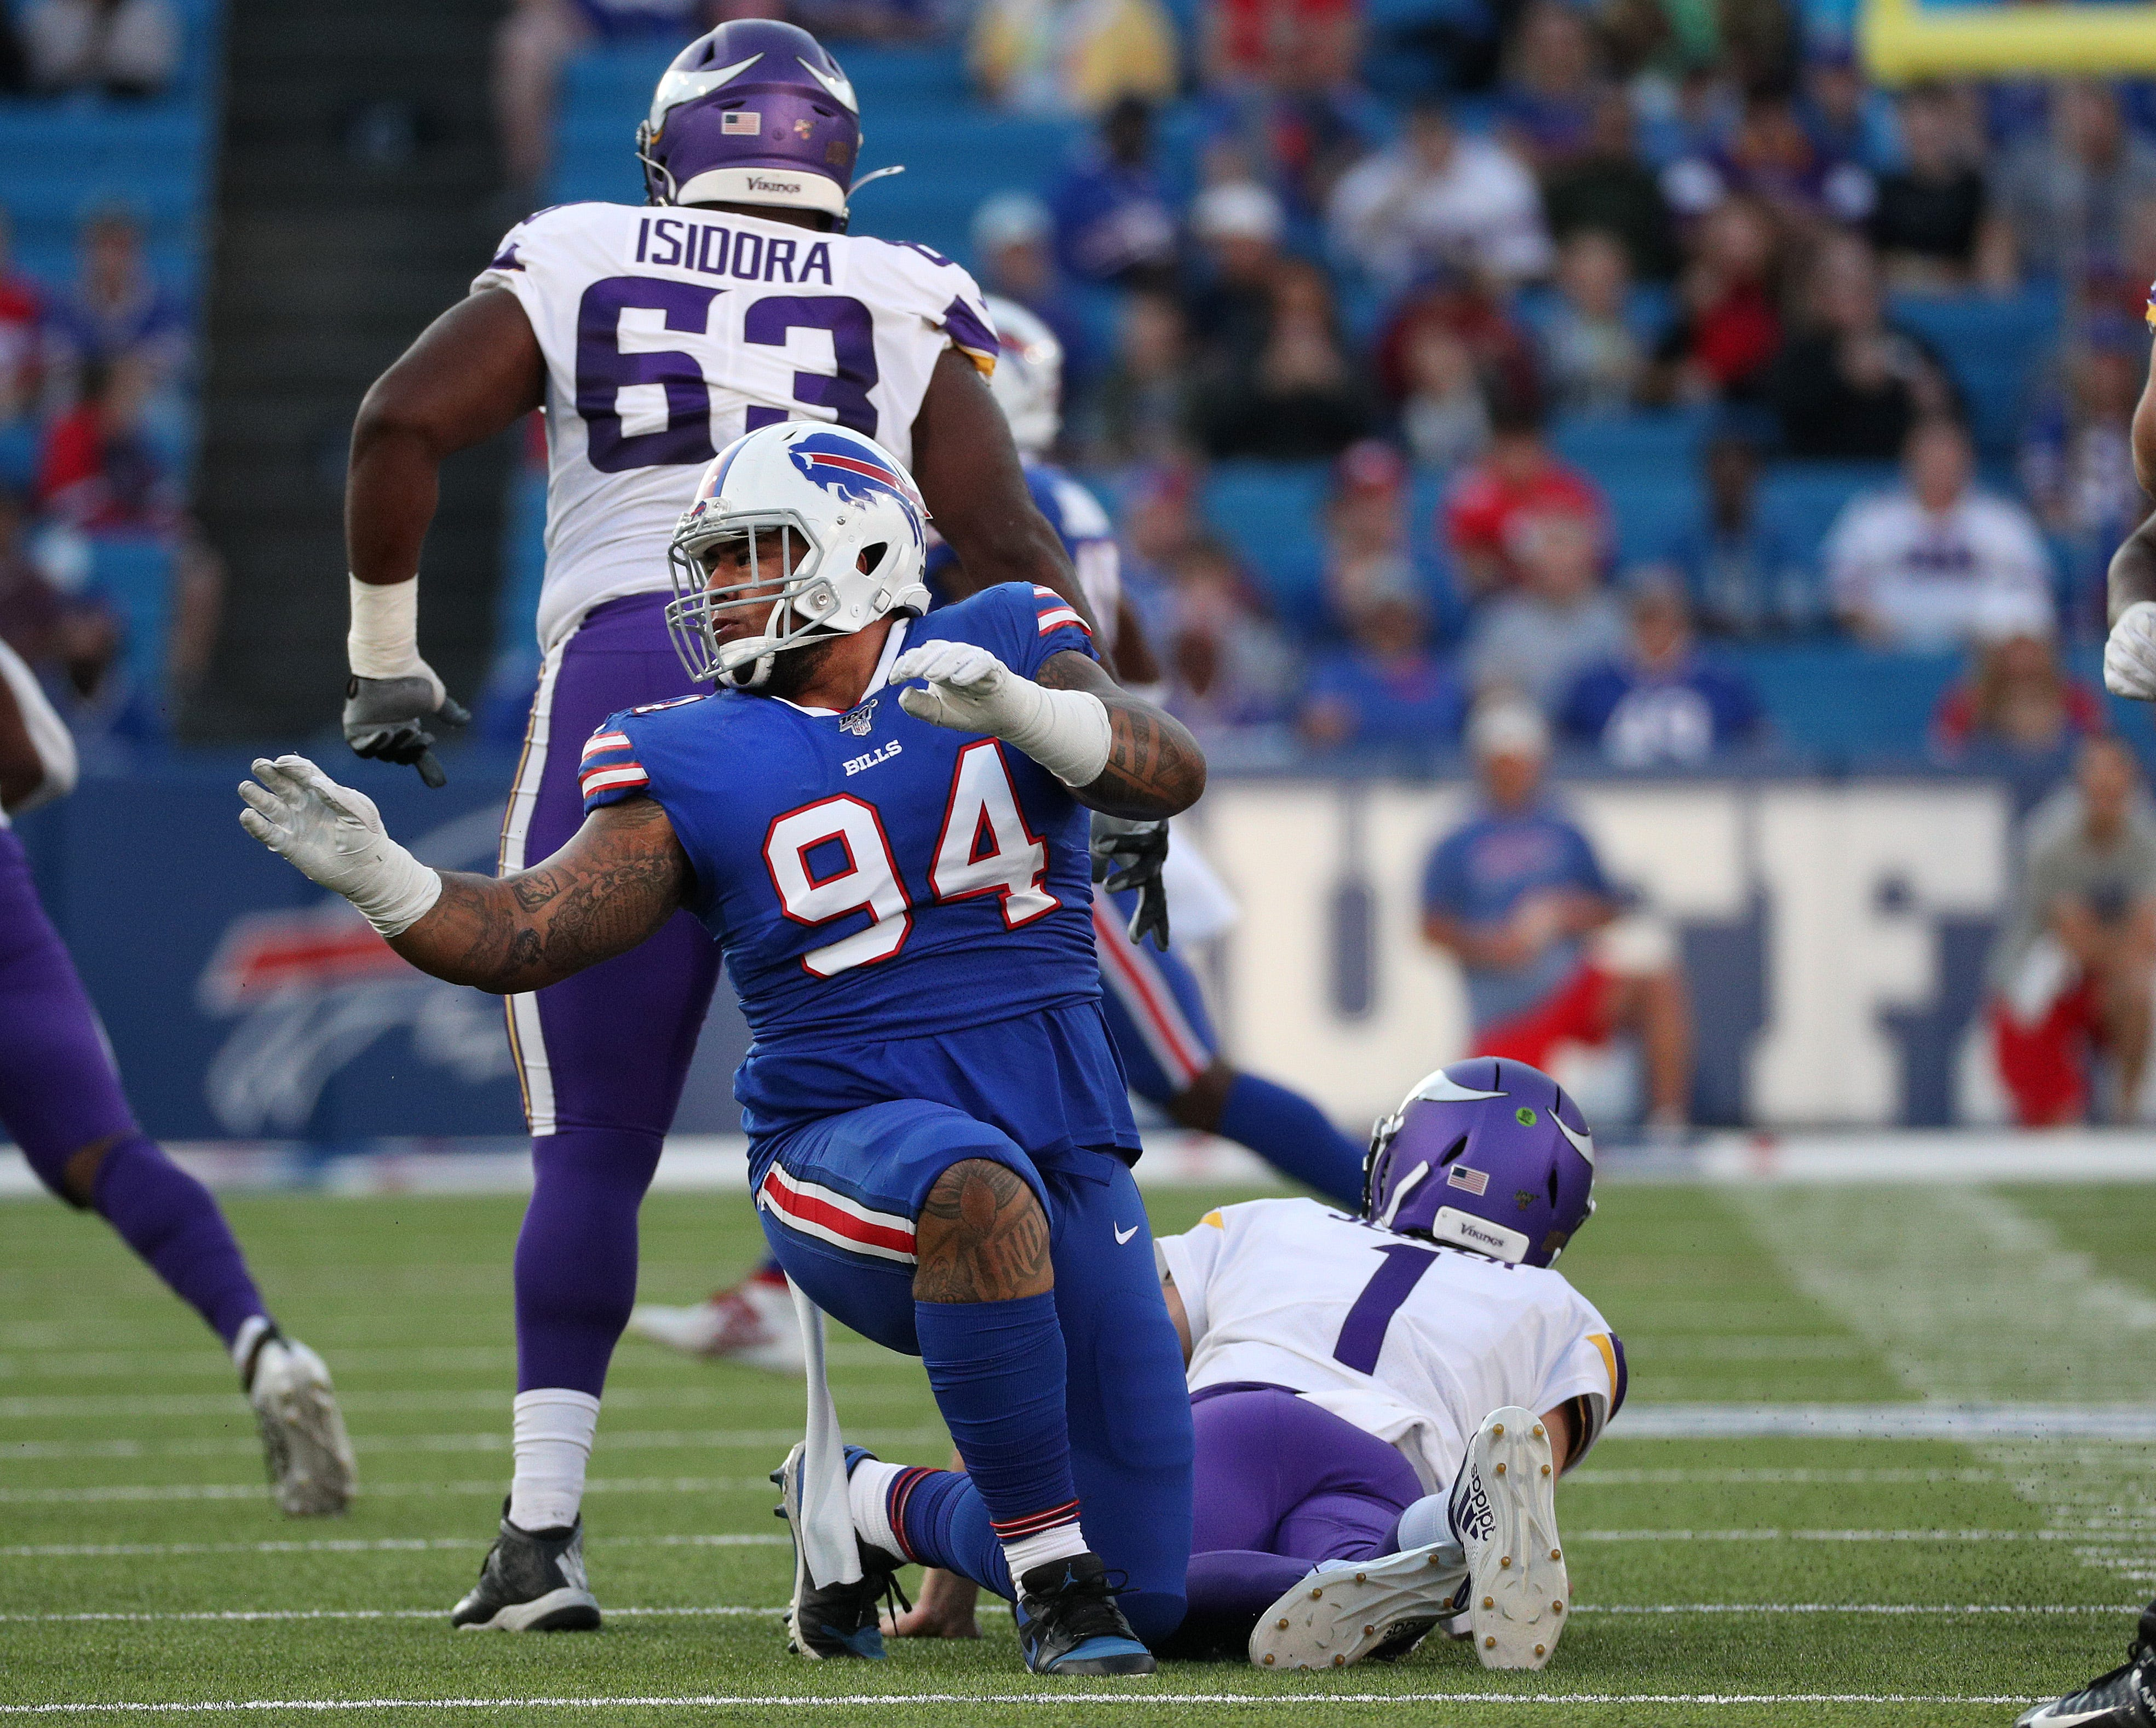 graphic relating to Buffalo Bills Schedule Printable named Rochester sports activities information, ratings, photographs, motion pictures - Democrat and